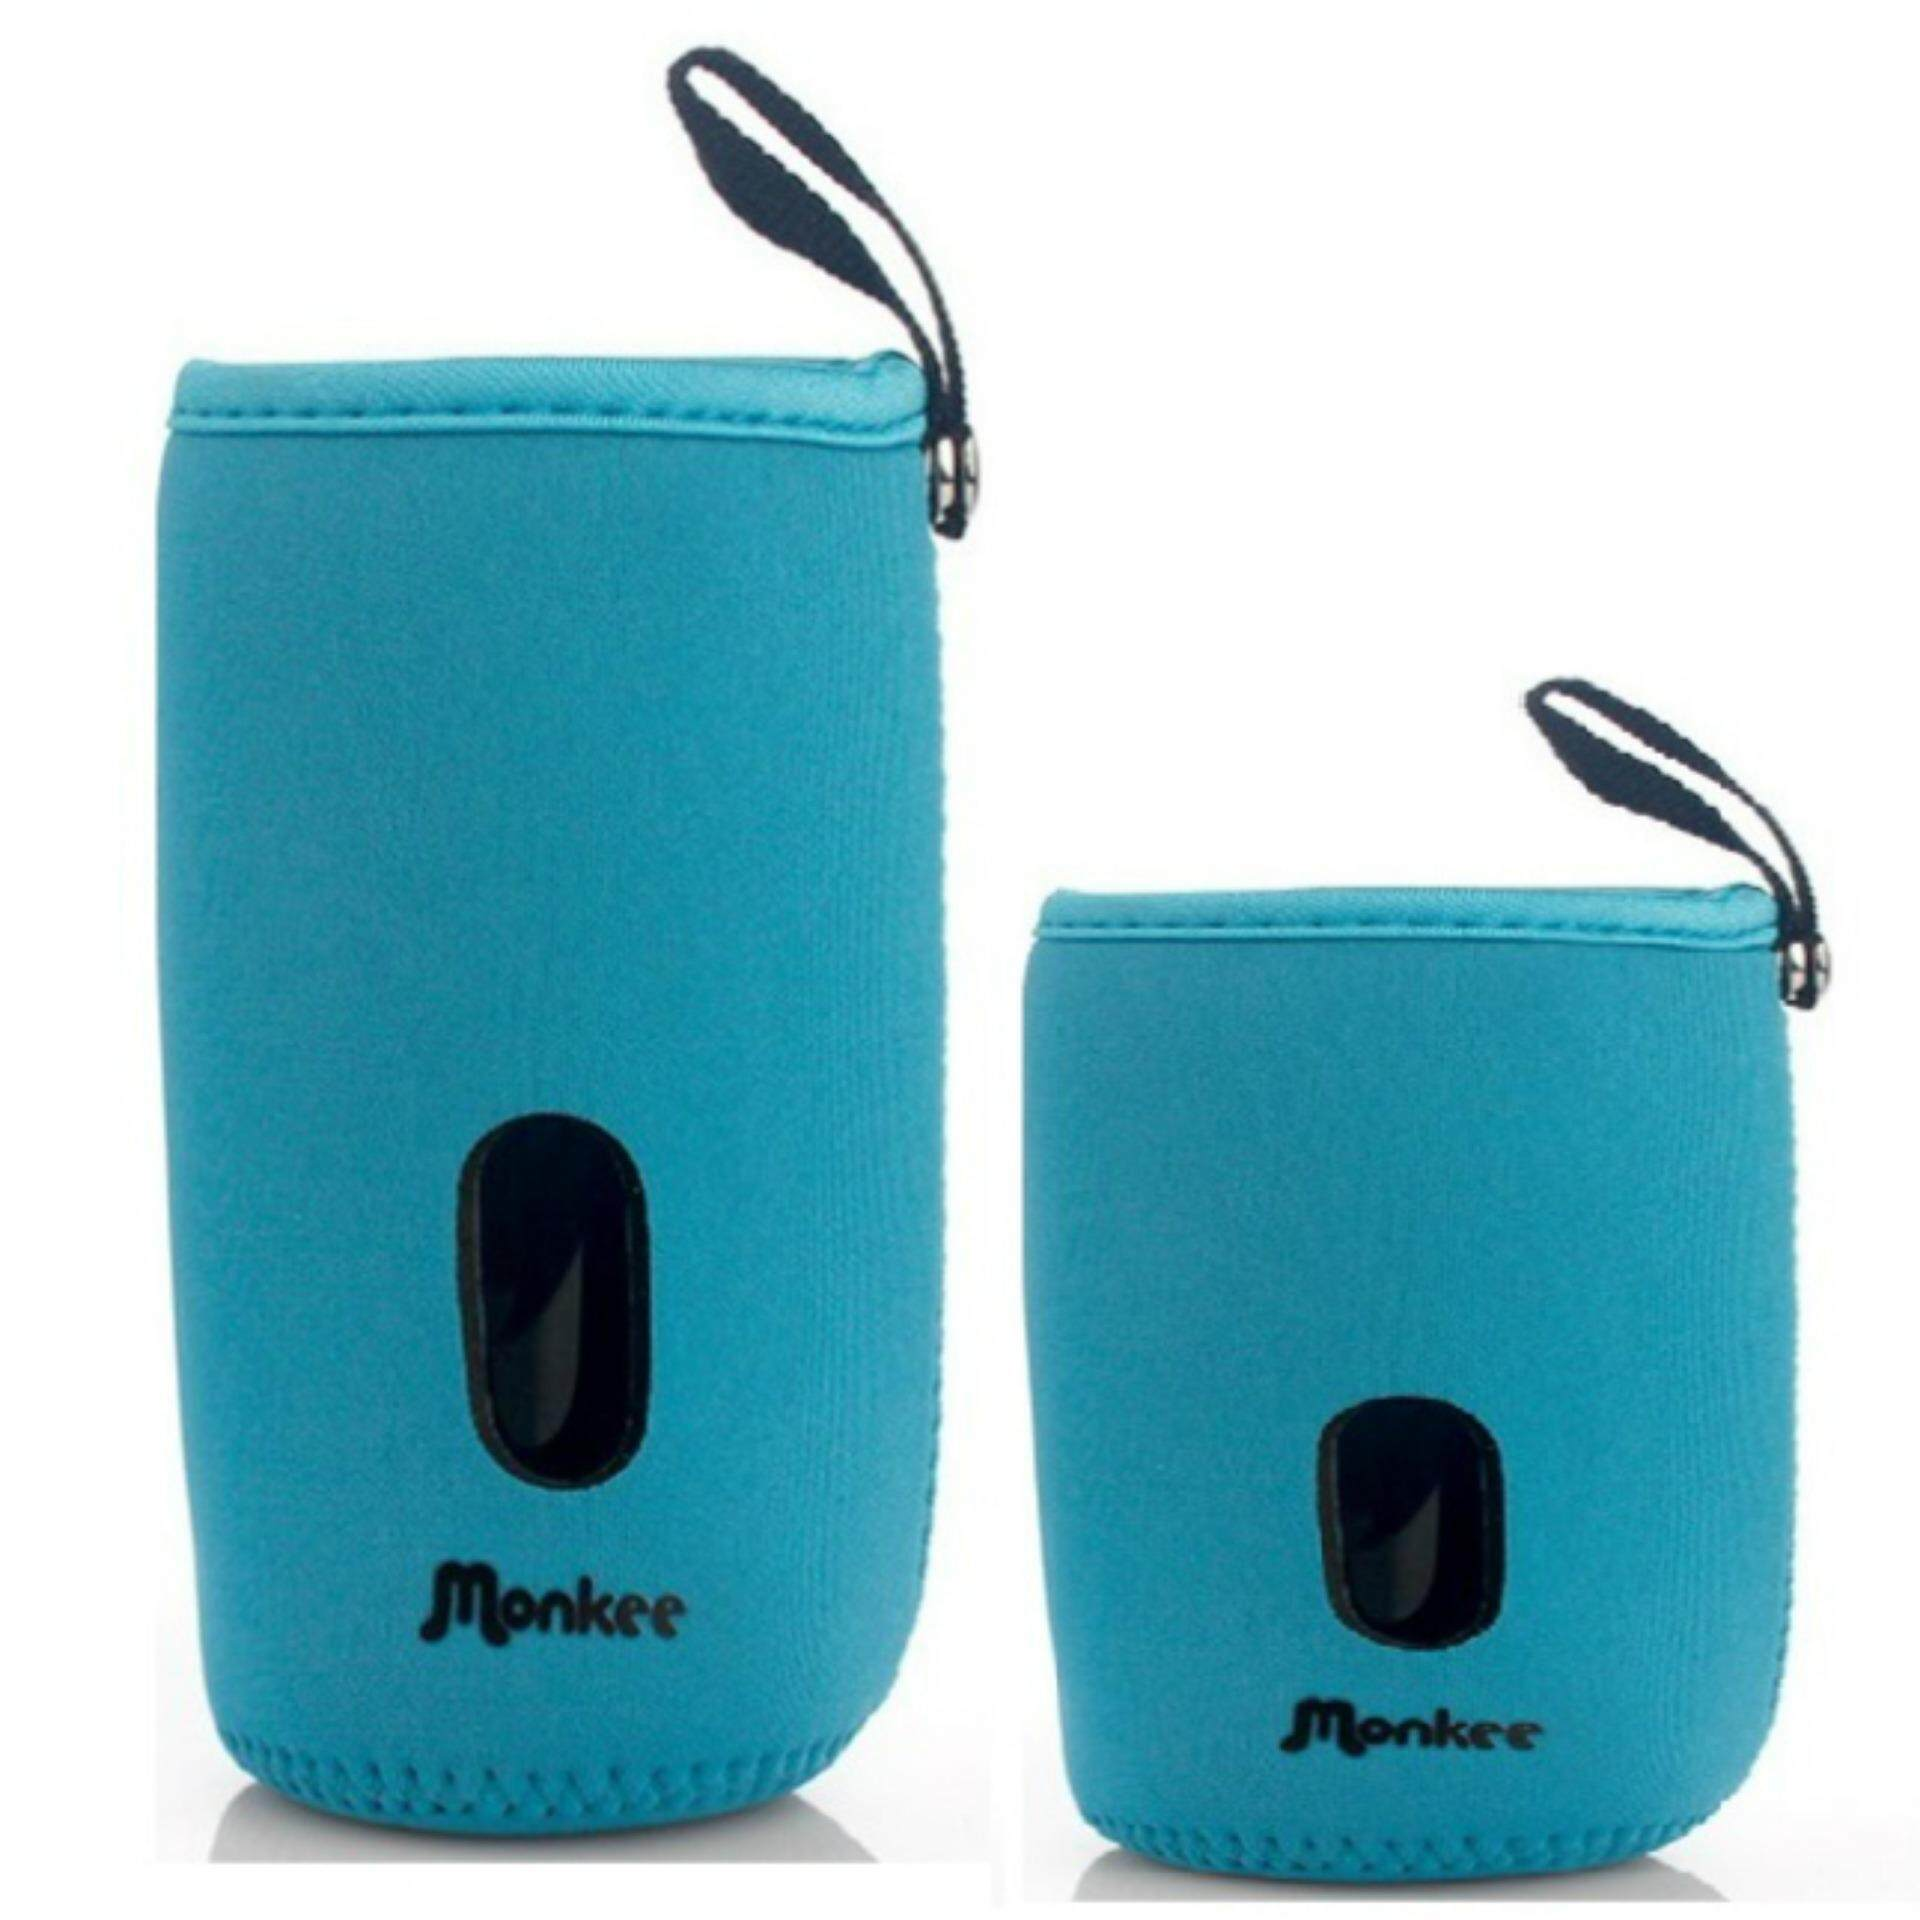 Set of 2 Baby Bottle Warmer Pouches: Fits 160ml and 240ml Bottles (1 Long, 1 Short) - Blue